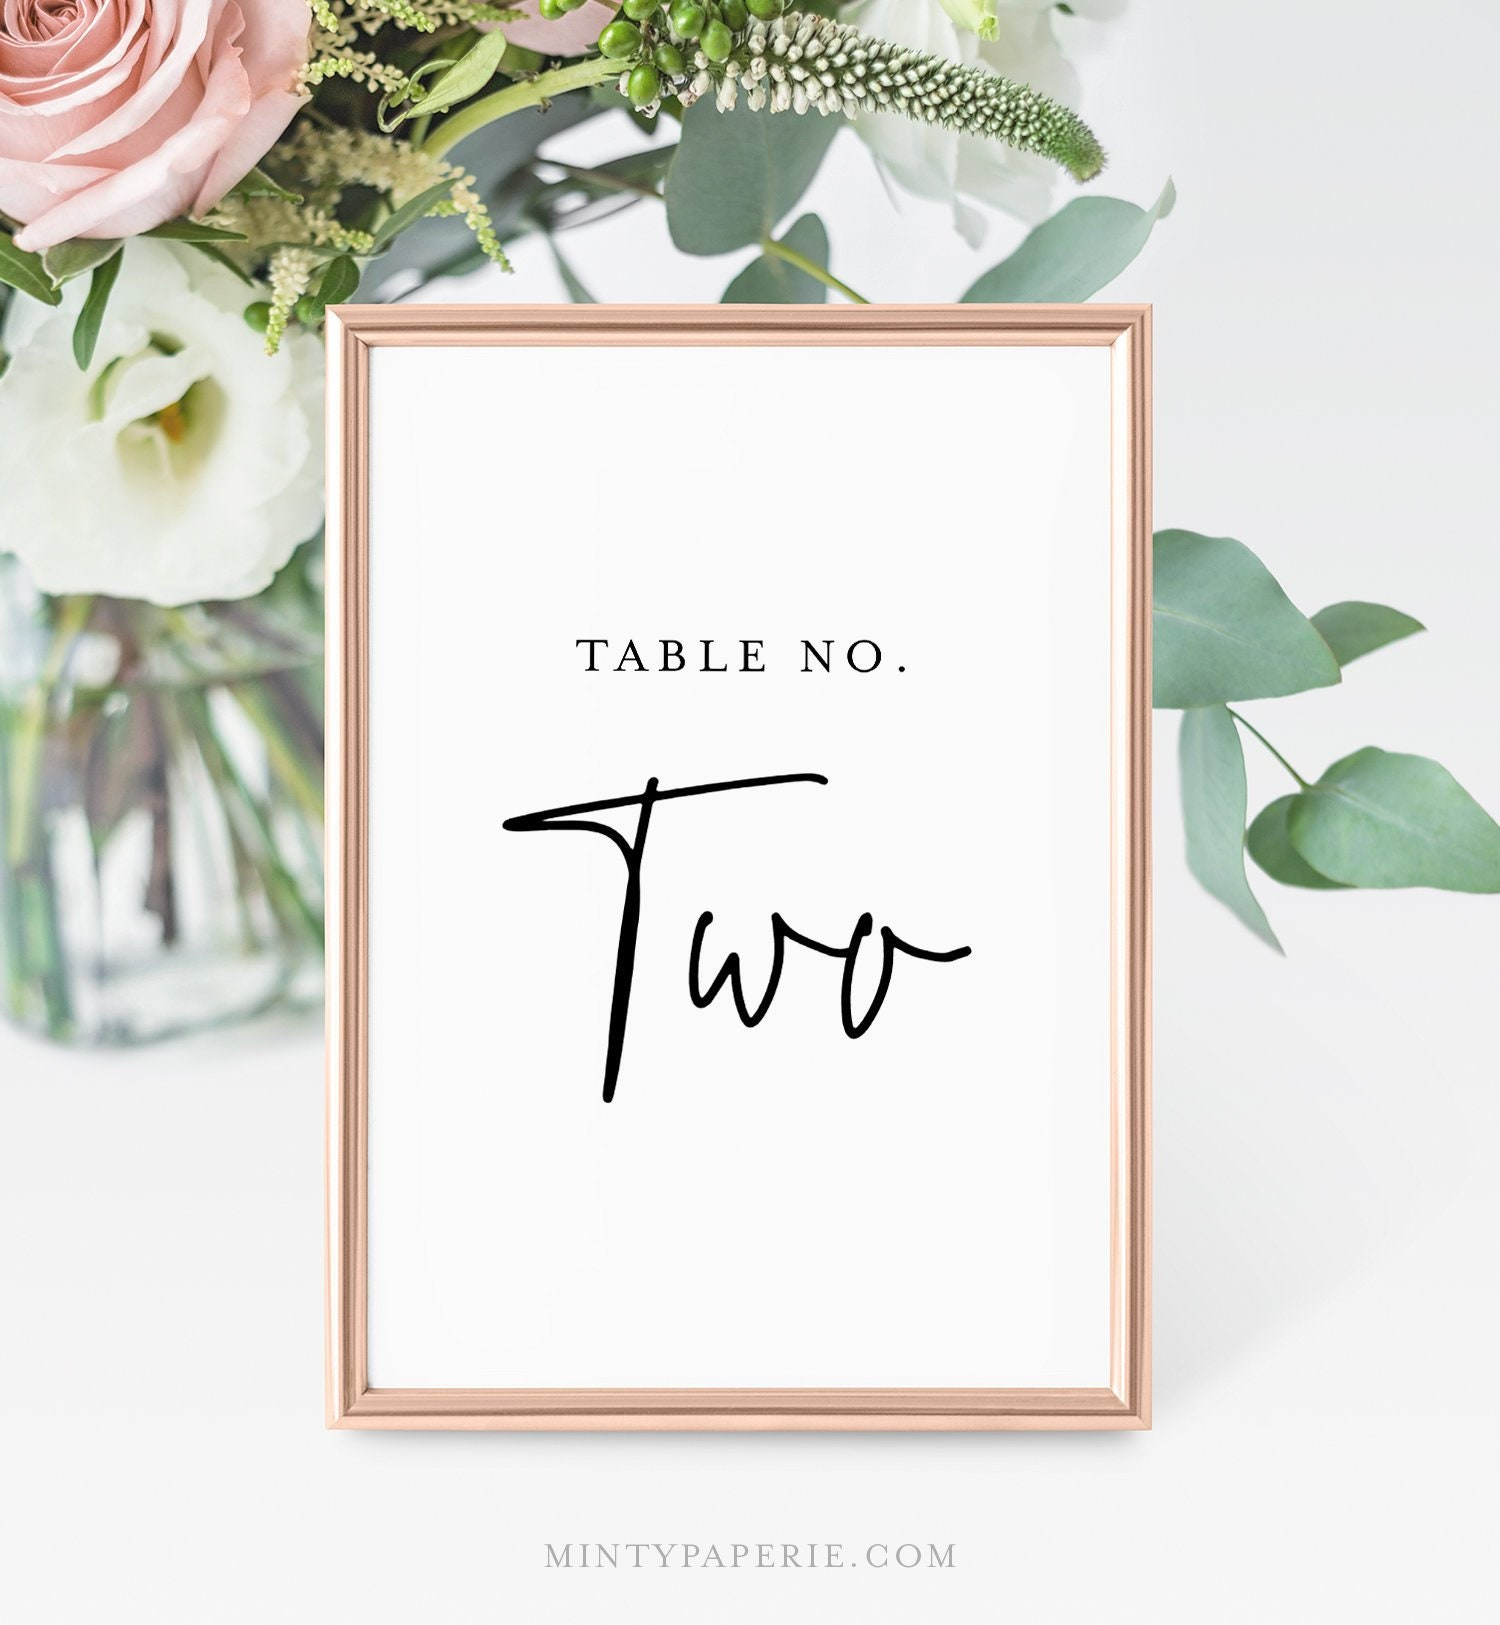 Five Sizes Simple Table Number Card INSTANT DOWNLOAD Minimalist Table Number Template Printable Table Number Edit /& Print #020-605TN